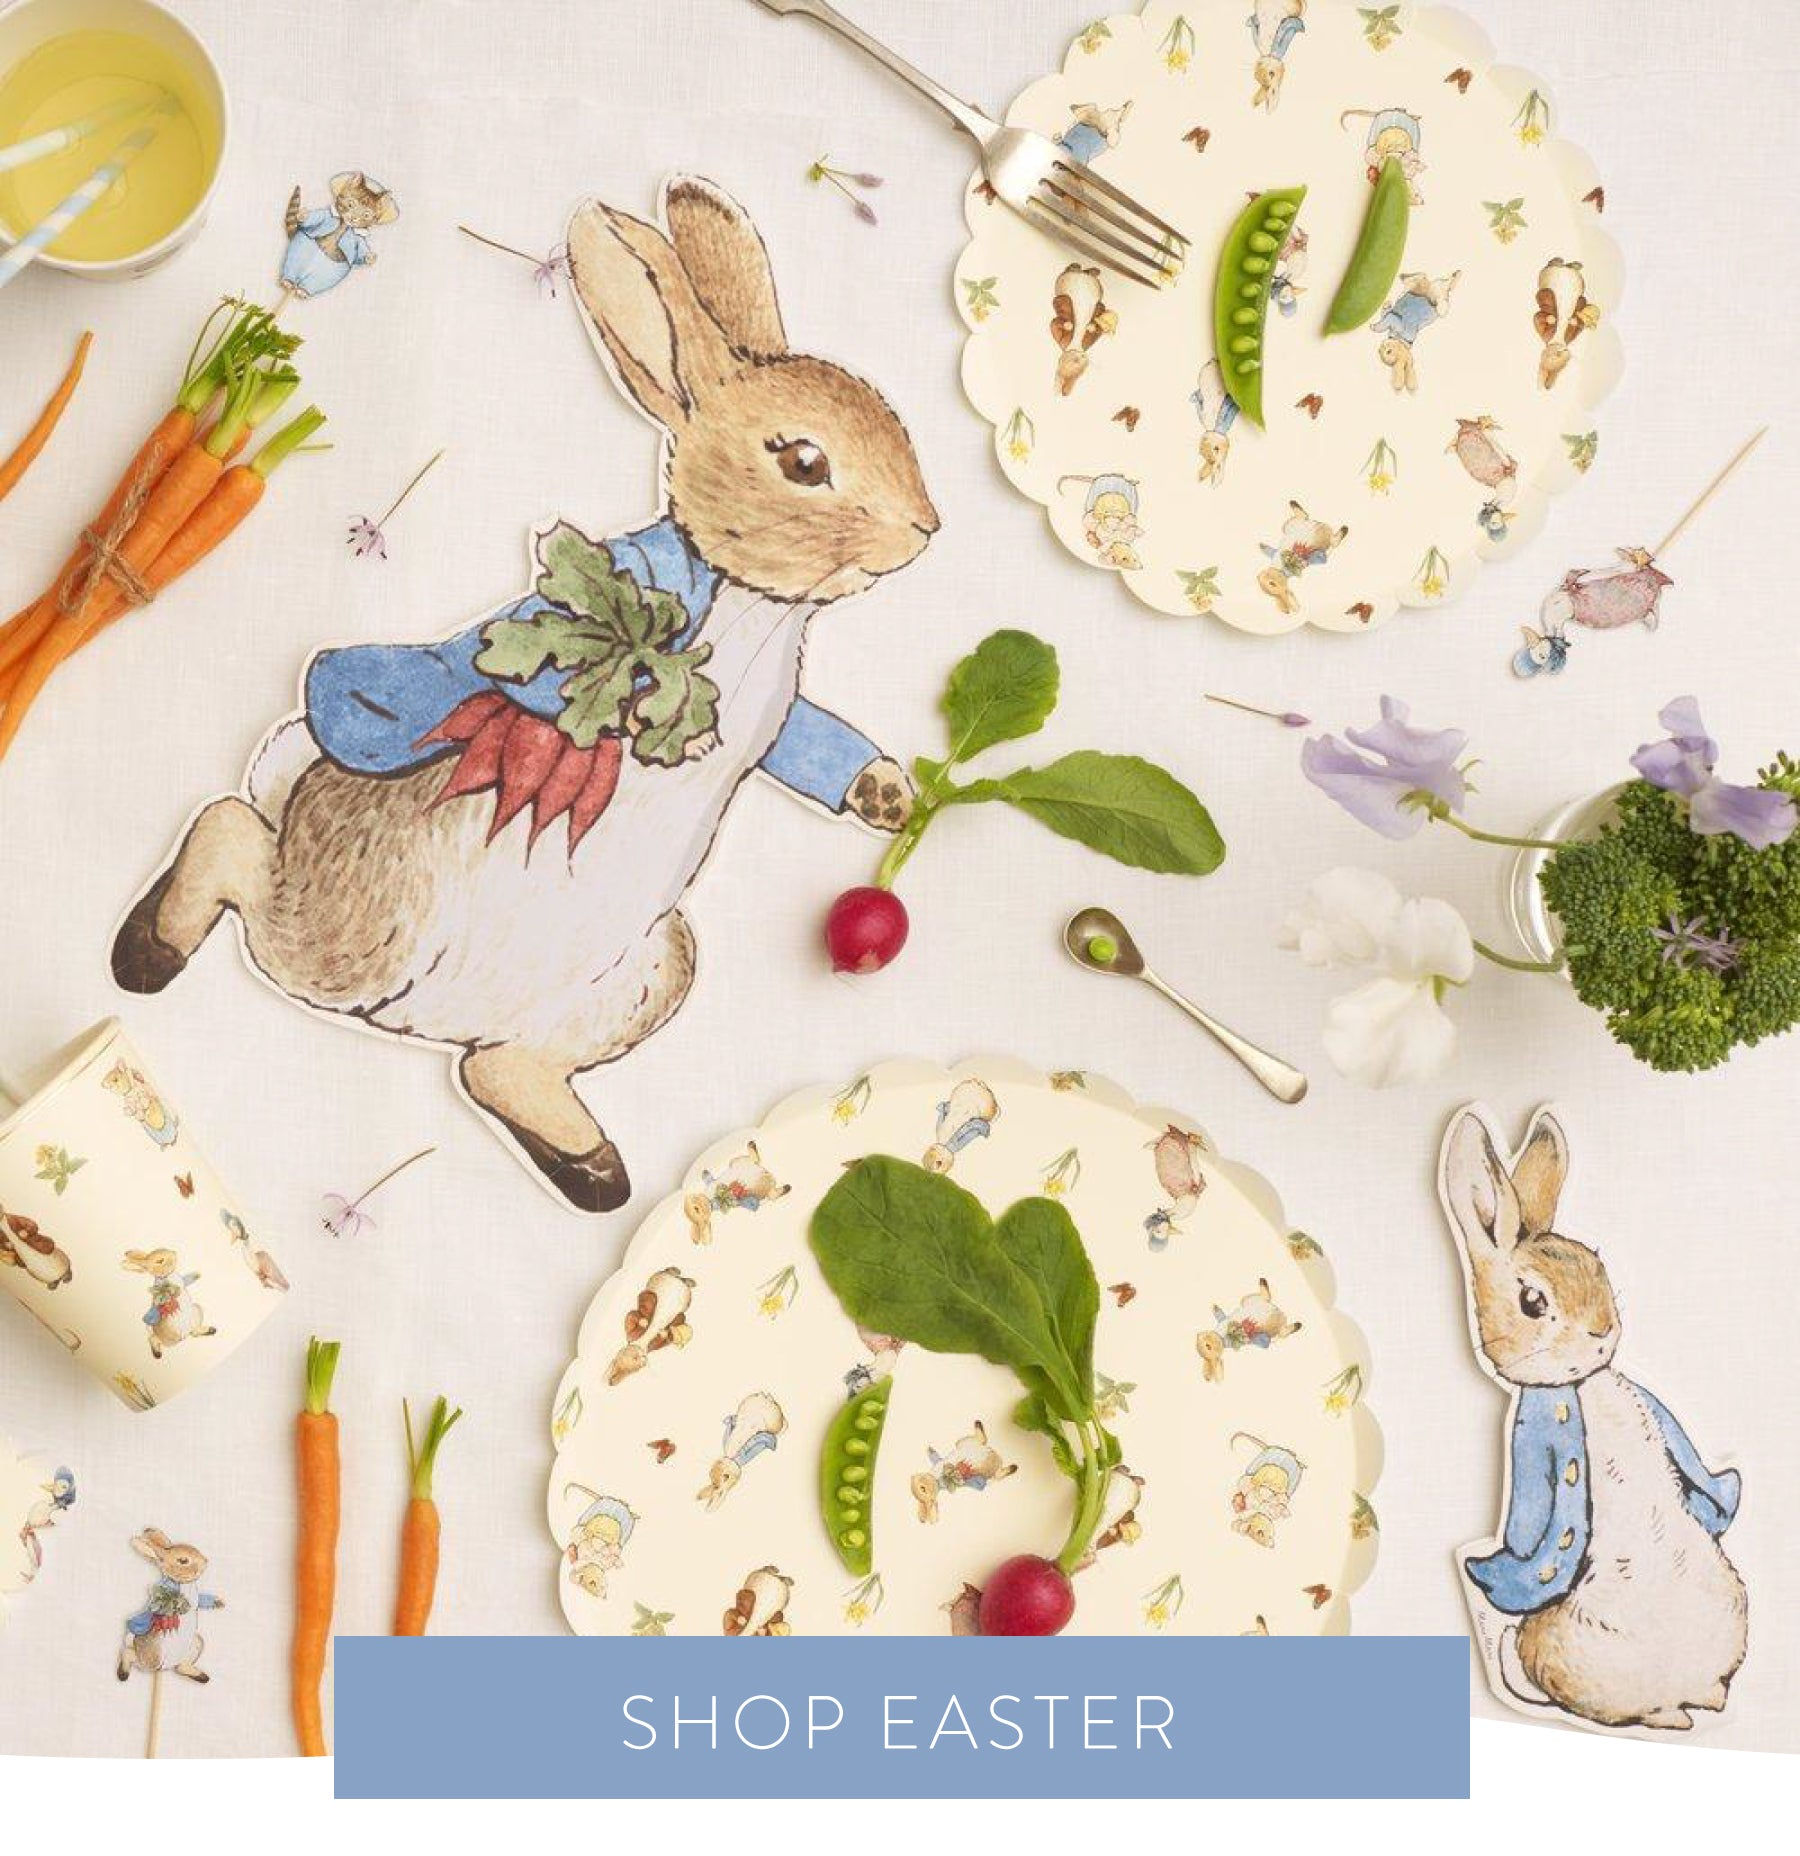 Shop for Easter Party supplies